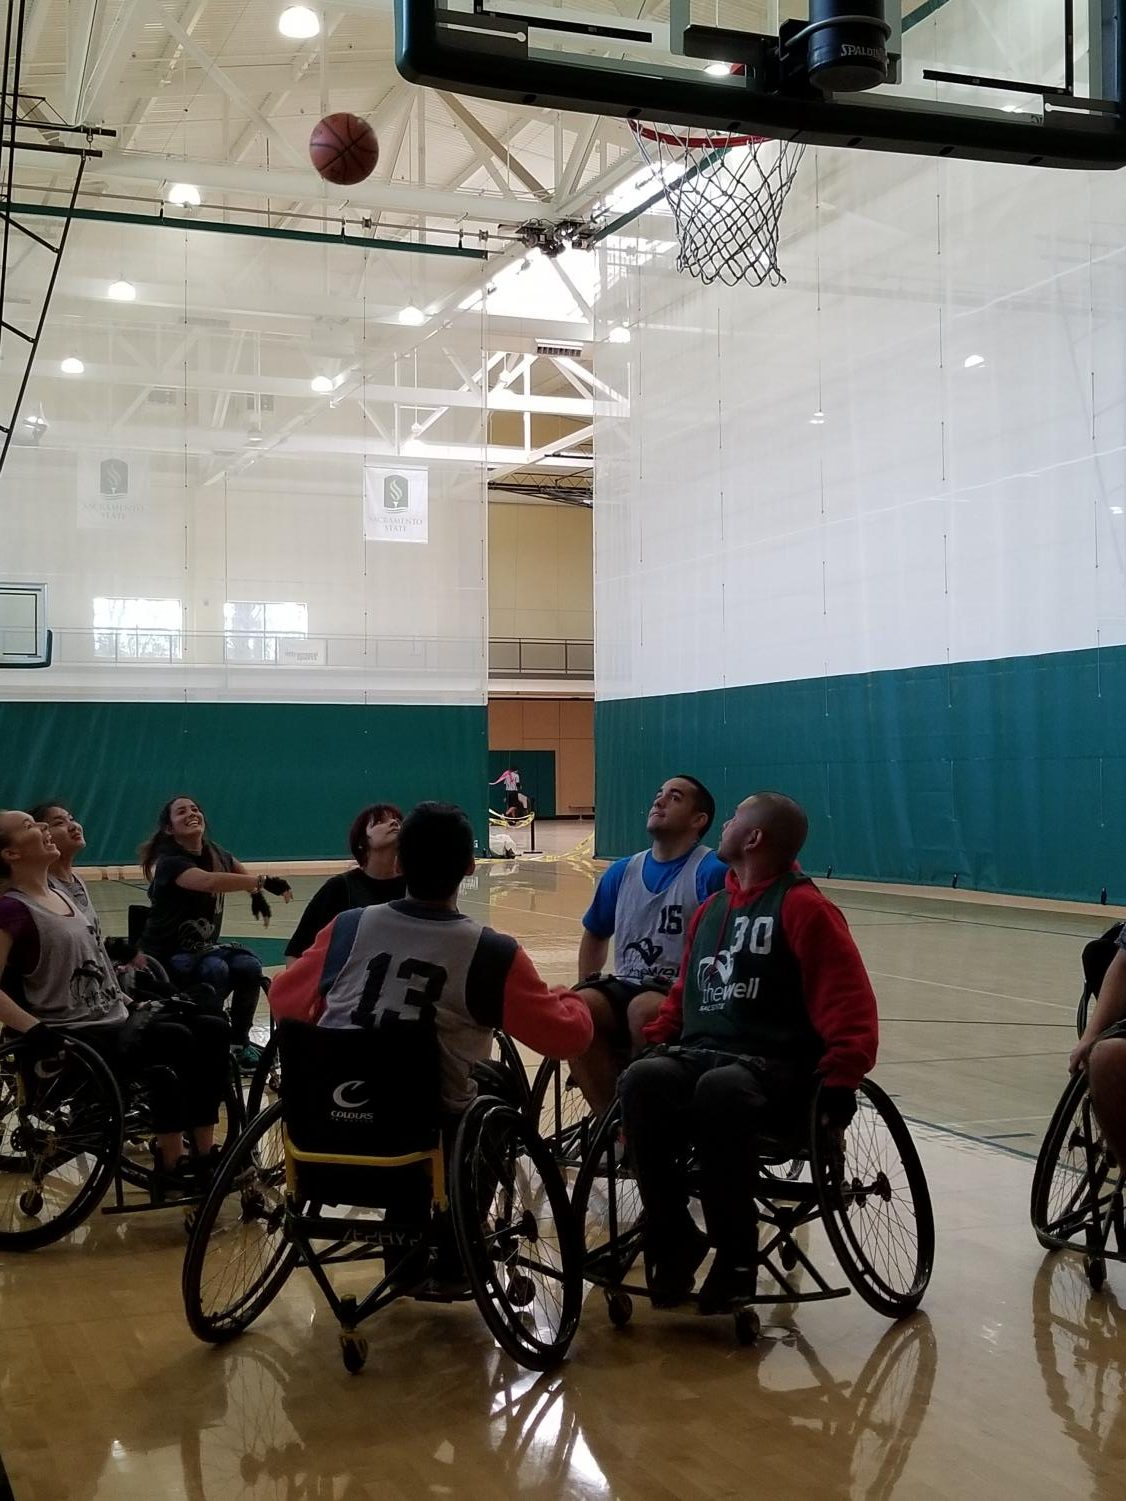 One student hoisted a shot while others away the rebound during All-In-Recreation's adaptive basketball on Feb. 15, 2019 in The WELL.